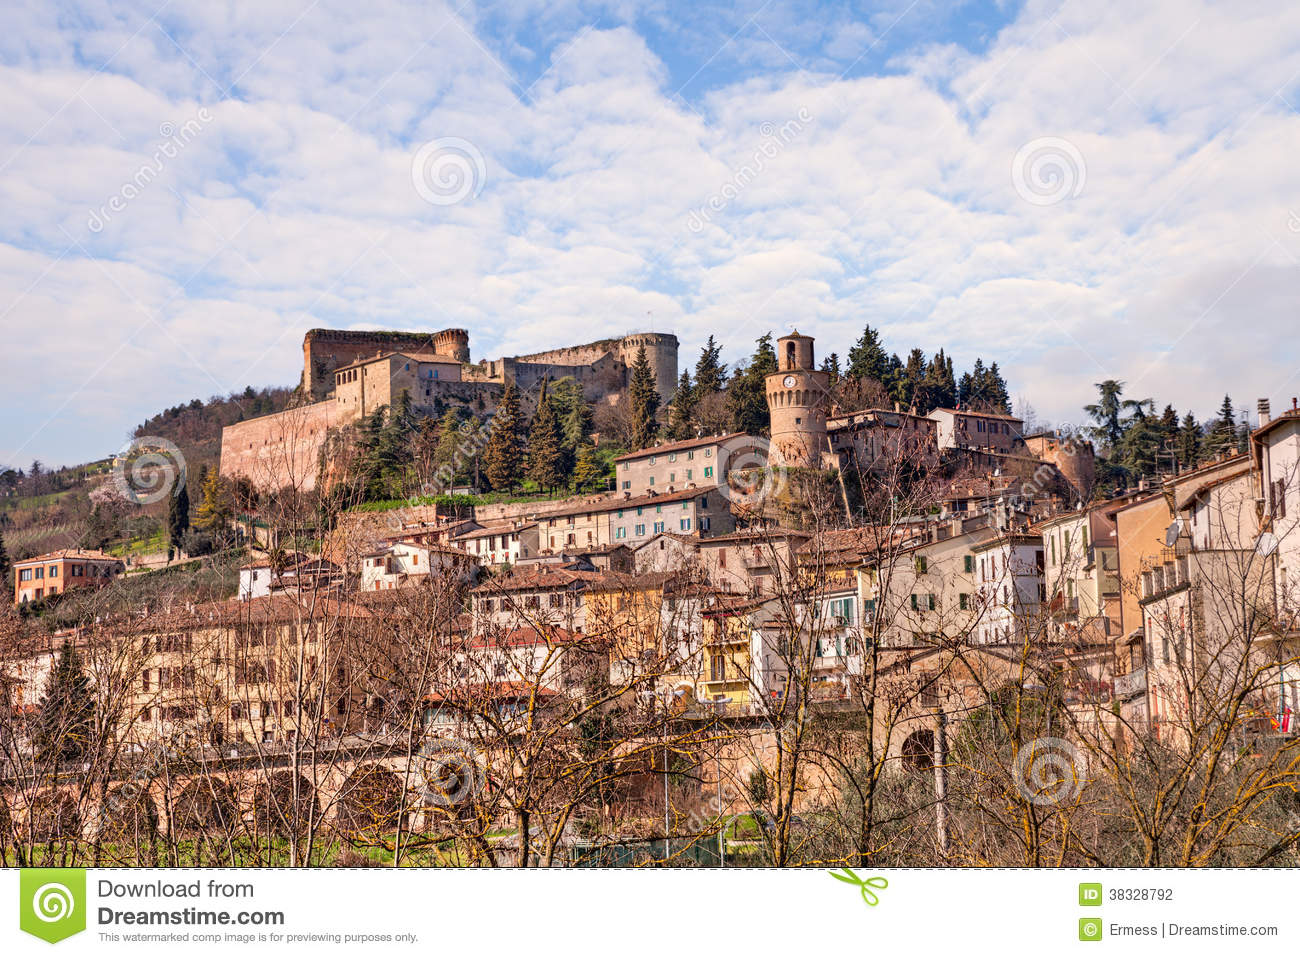 Castrocaro Terme Italy  city photos : Cityscape Of The Little Town Castrocaro Terme, Italy Stock Photography ...